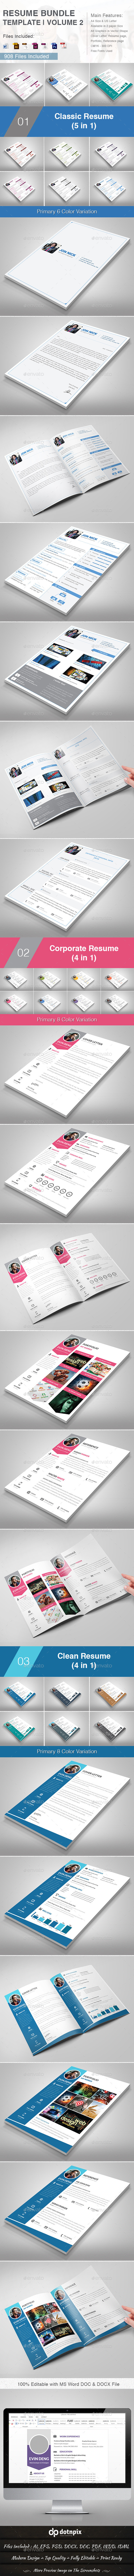 GraphicRiver Resume Bundle Template Volume 2 10795478